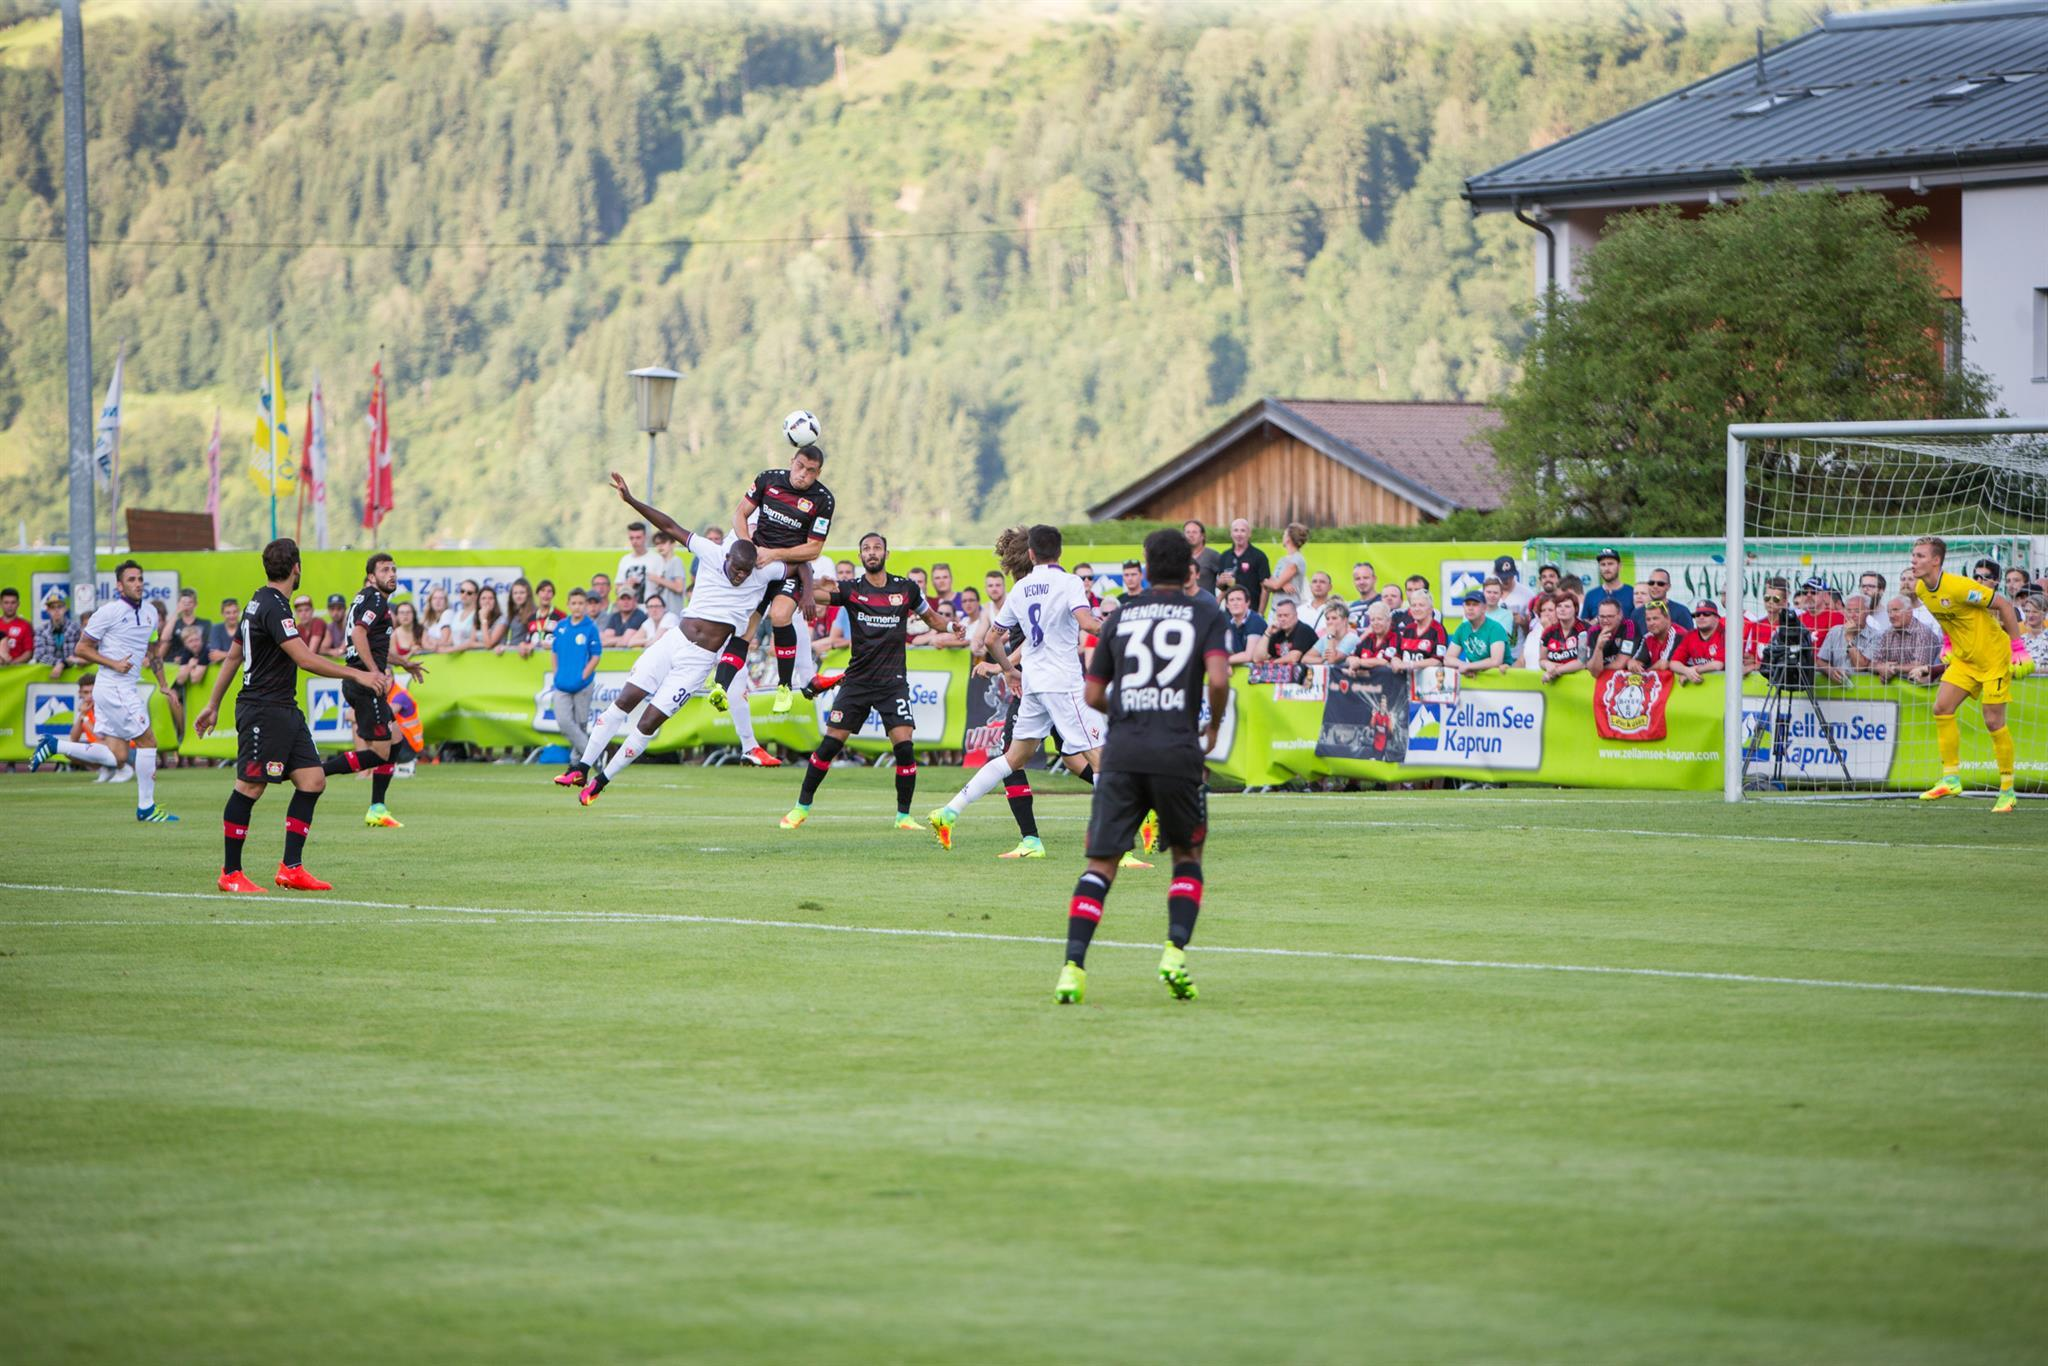 Soccer camp Bayer 04 Leverkusen - 15/07/2019